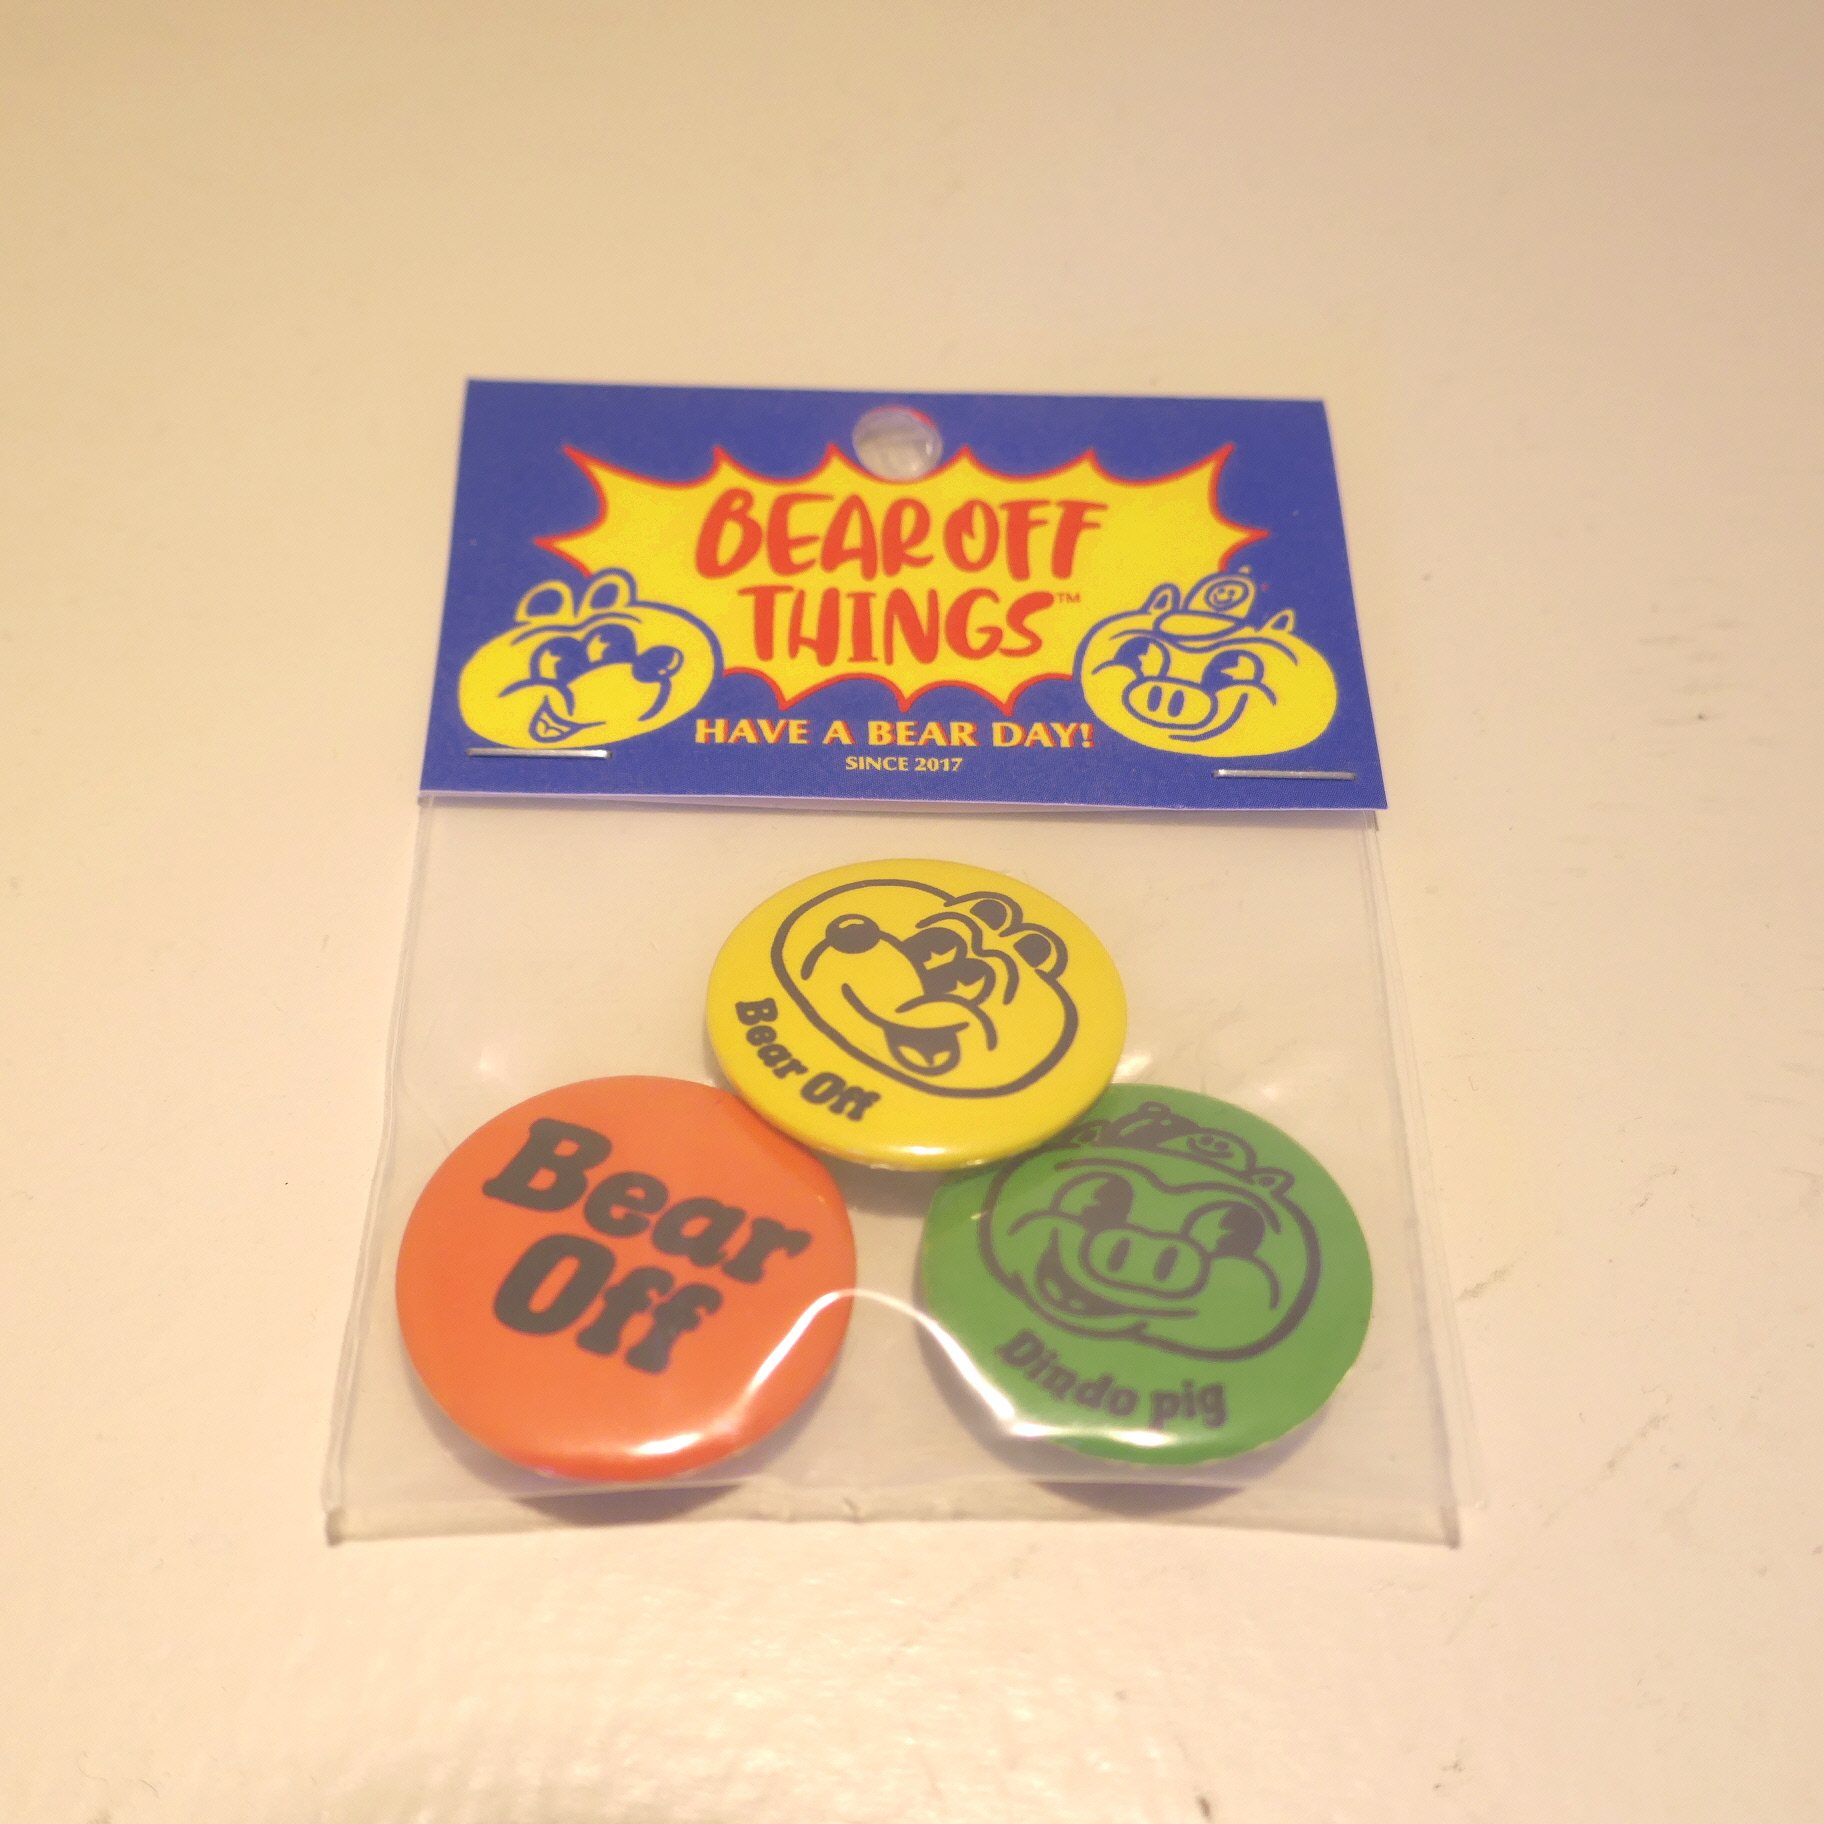 BEAROFF THINGS BADGE